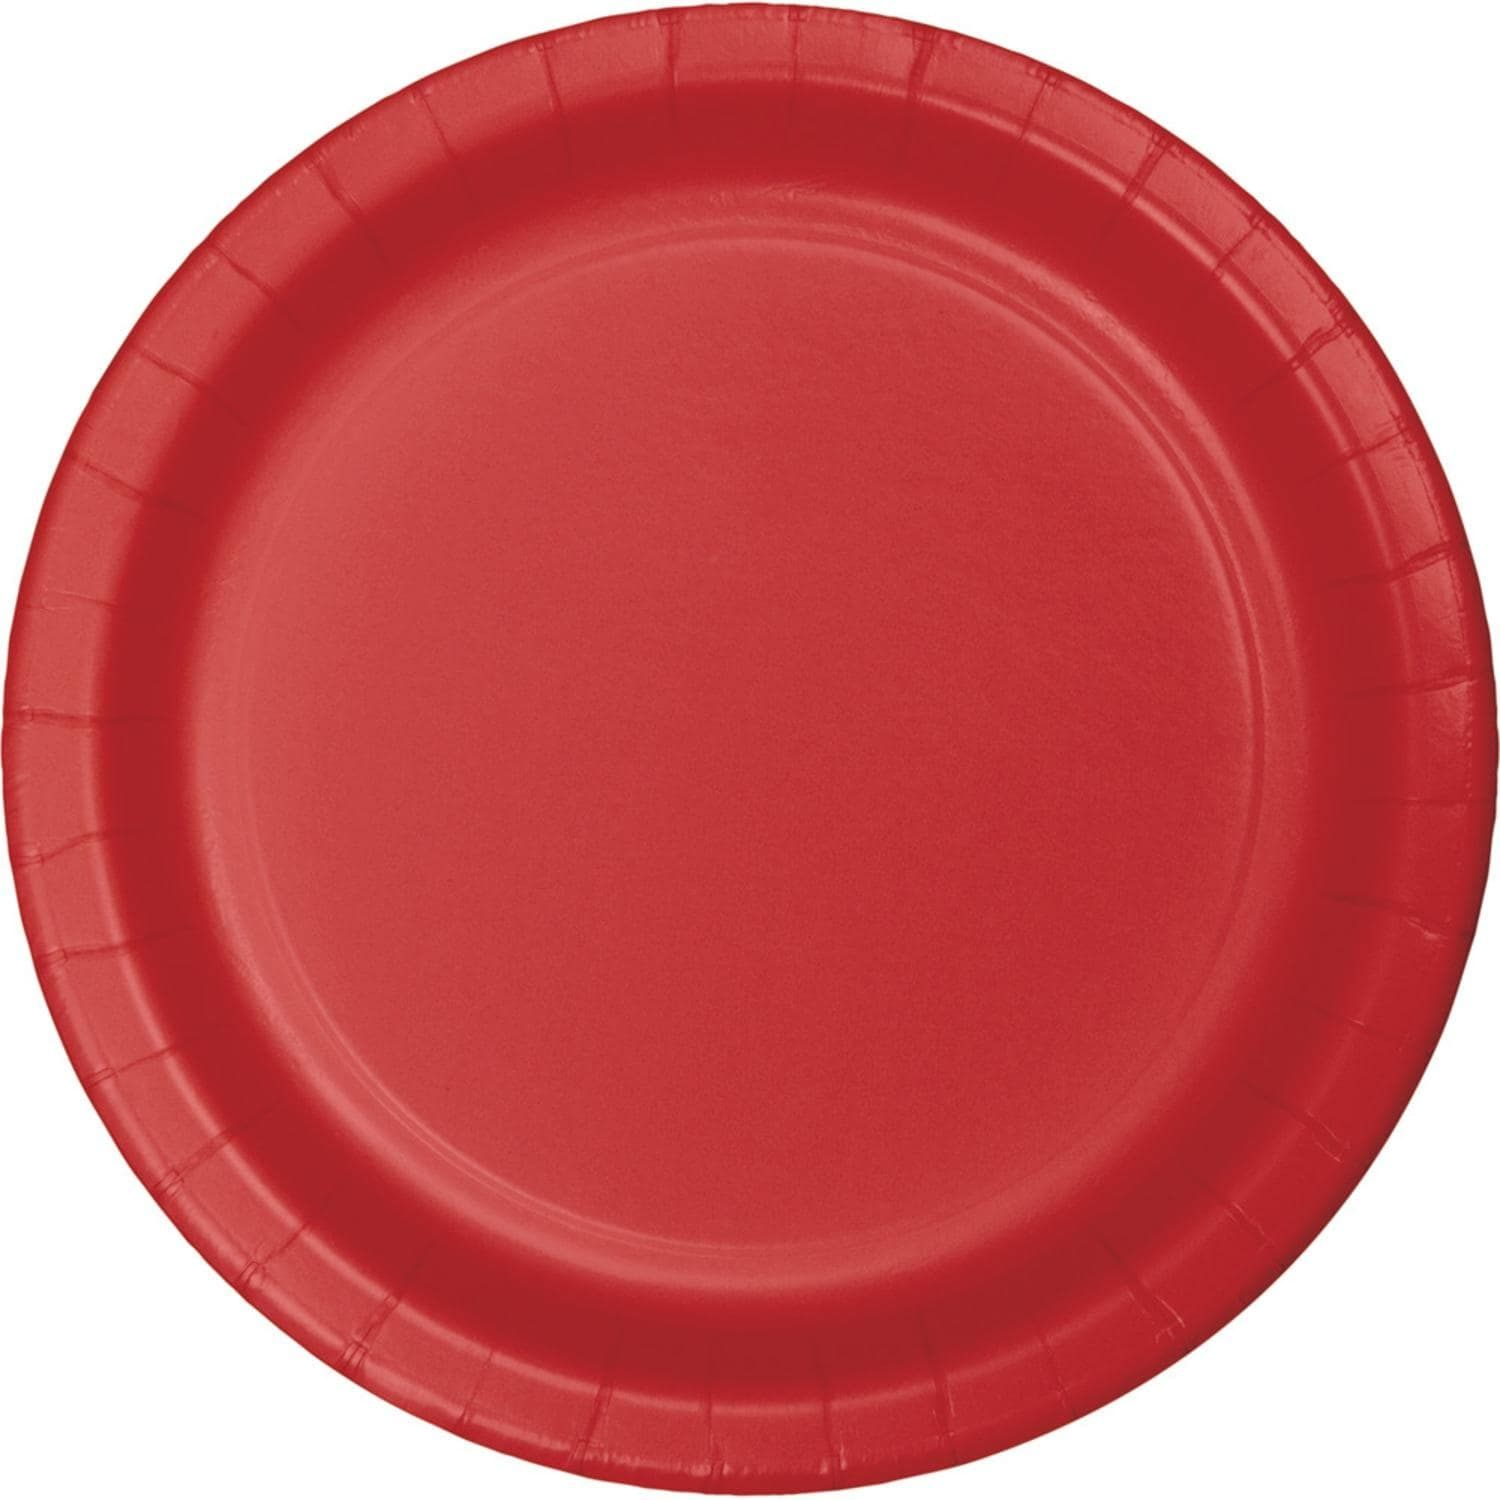 Club Pack of 240 Classic Red Disposable Paper Party Banquet Dinner Plates 9  sc 1 st  Pinterest & Club Pack of 240 Classic Red Disposable Paper Party Banquet Dinner ...